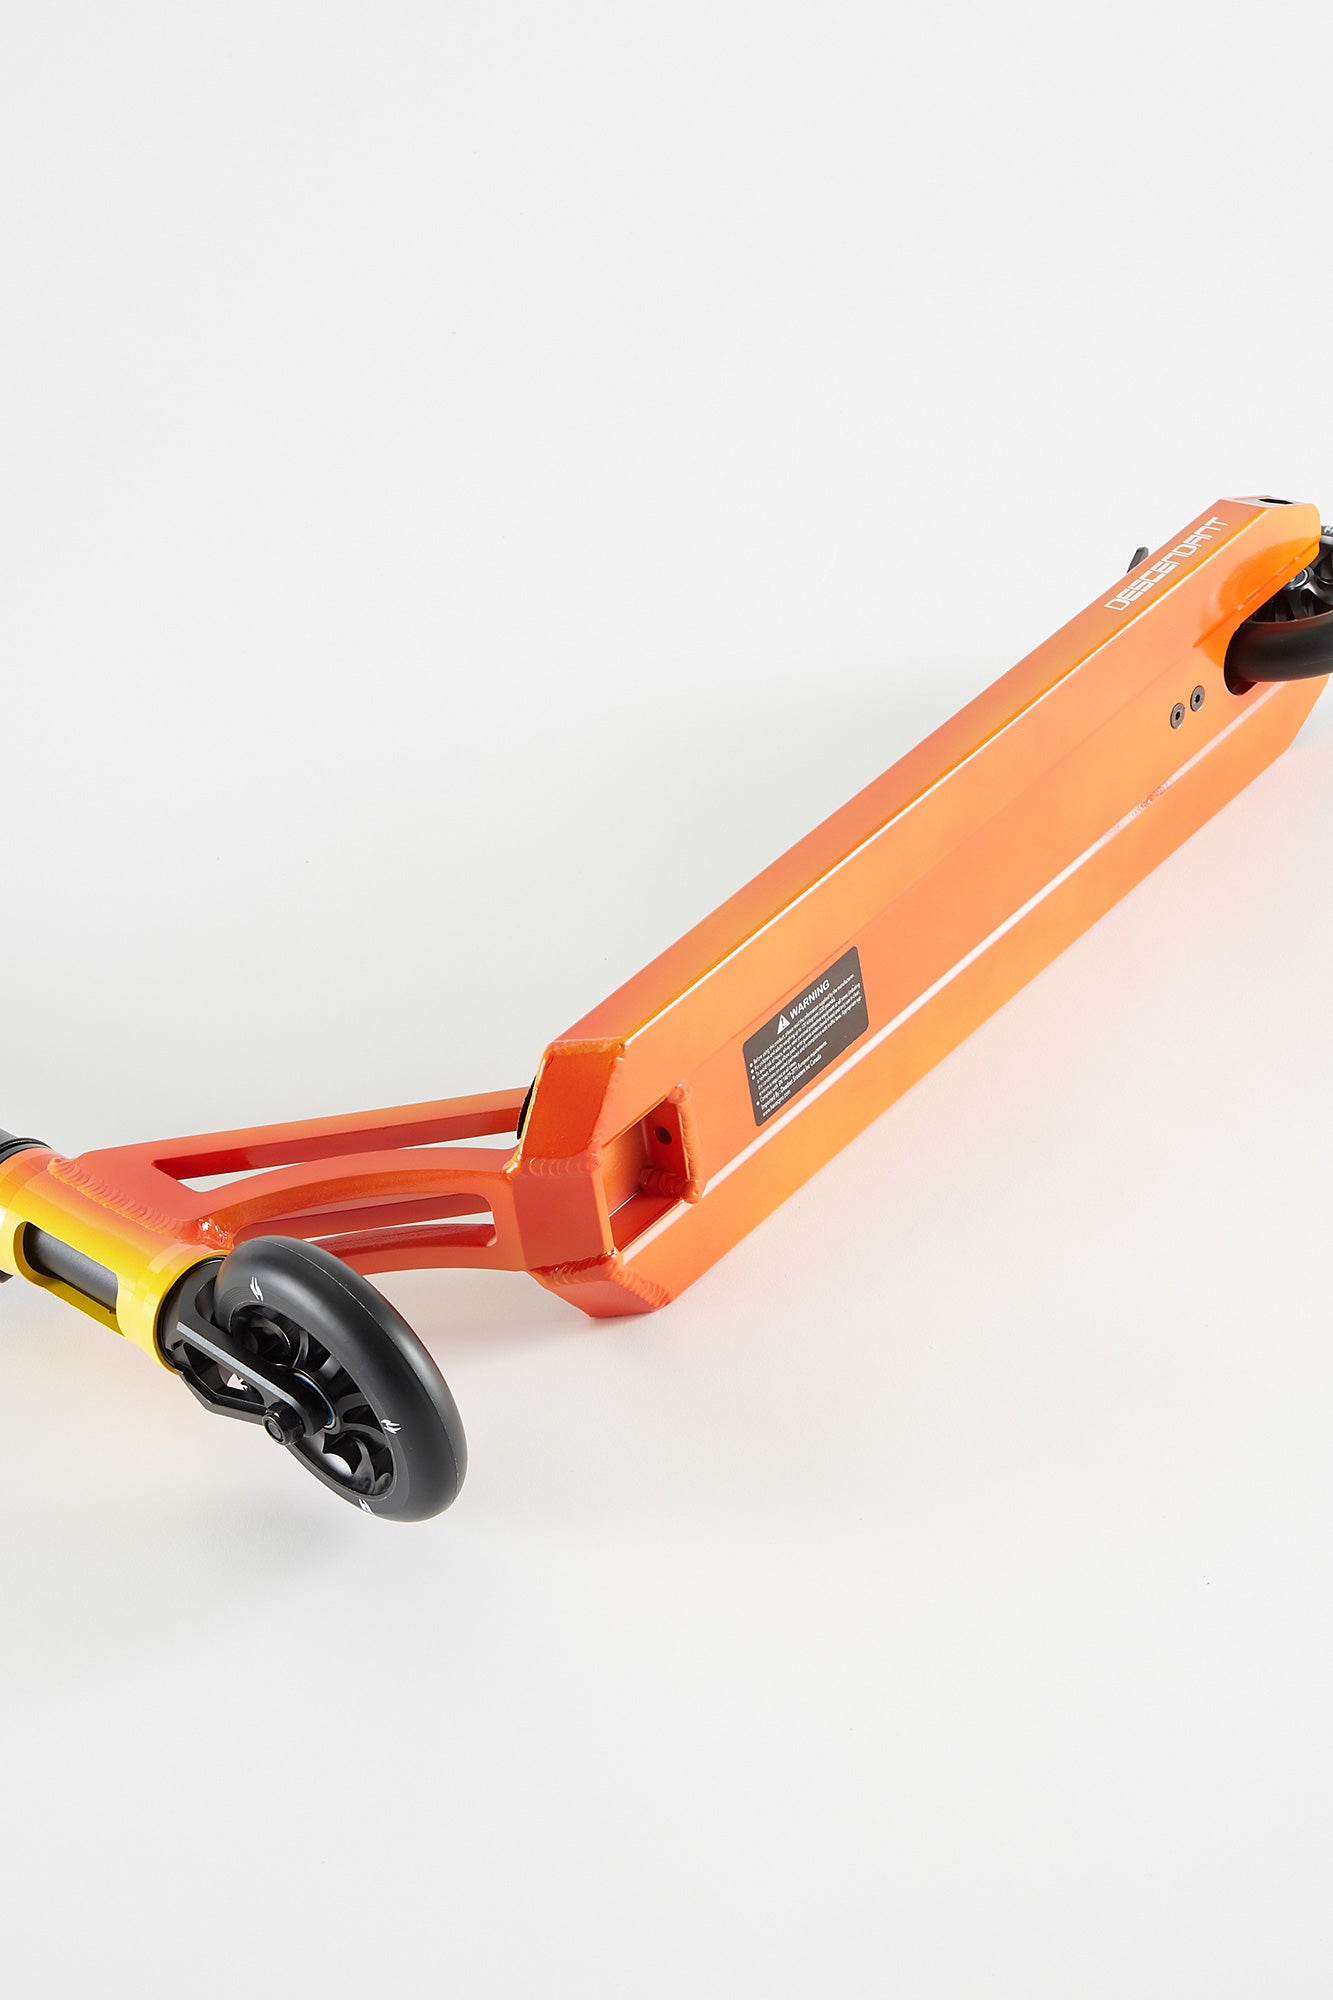 Haavoc Decendant Pro Scooter - Orange